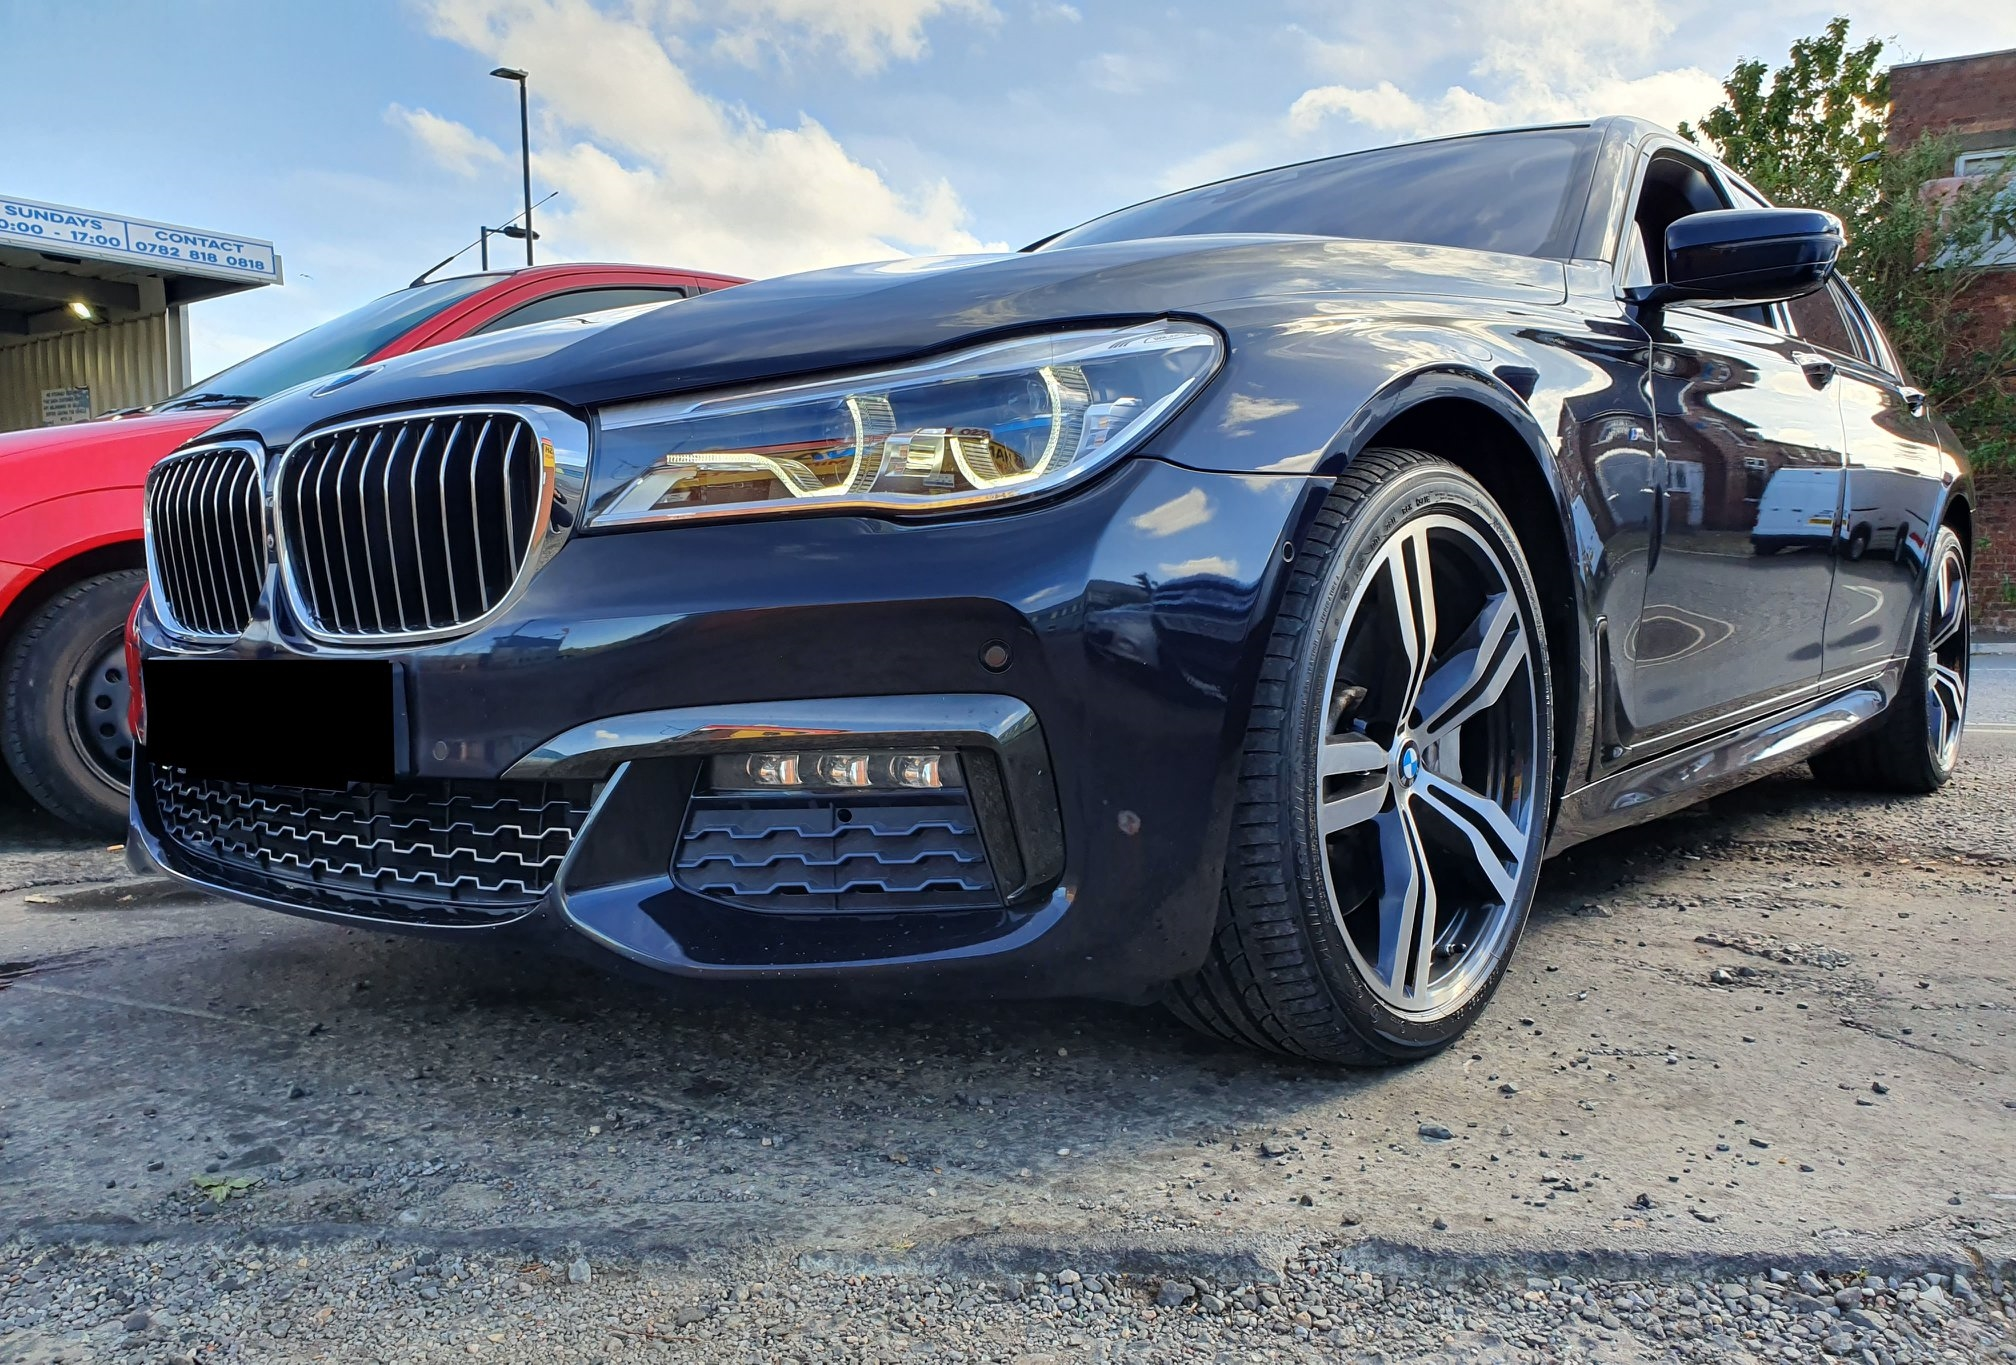 BMW 750i G series for tuning & coding